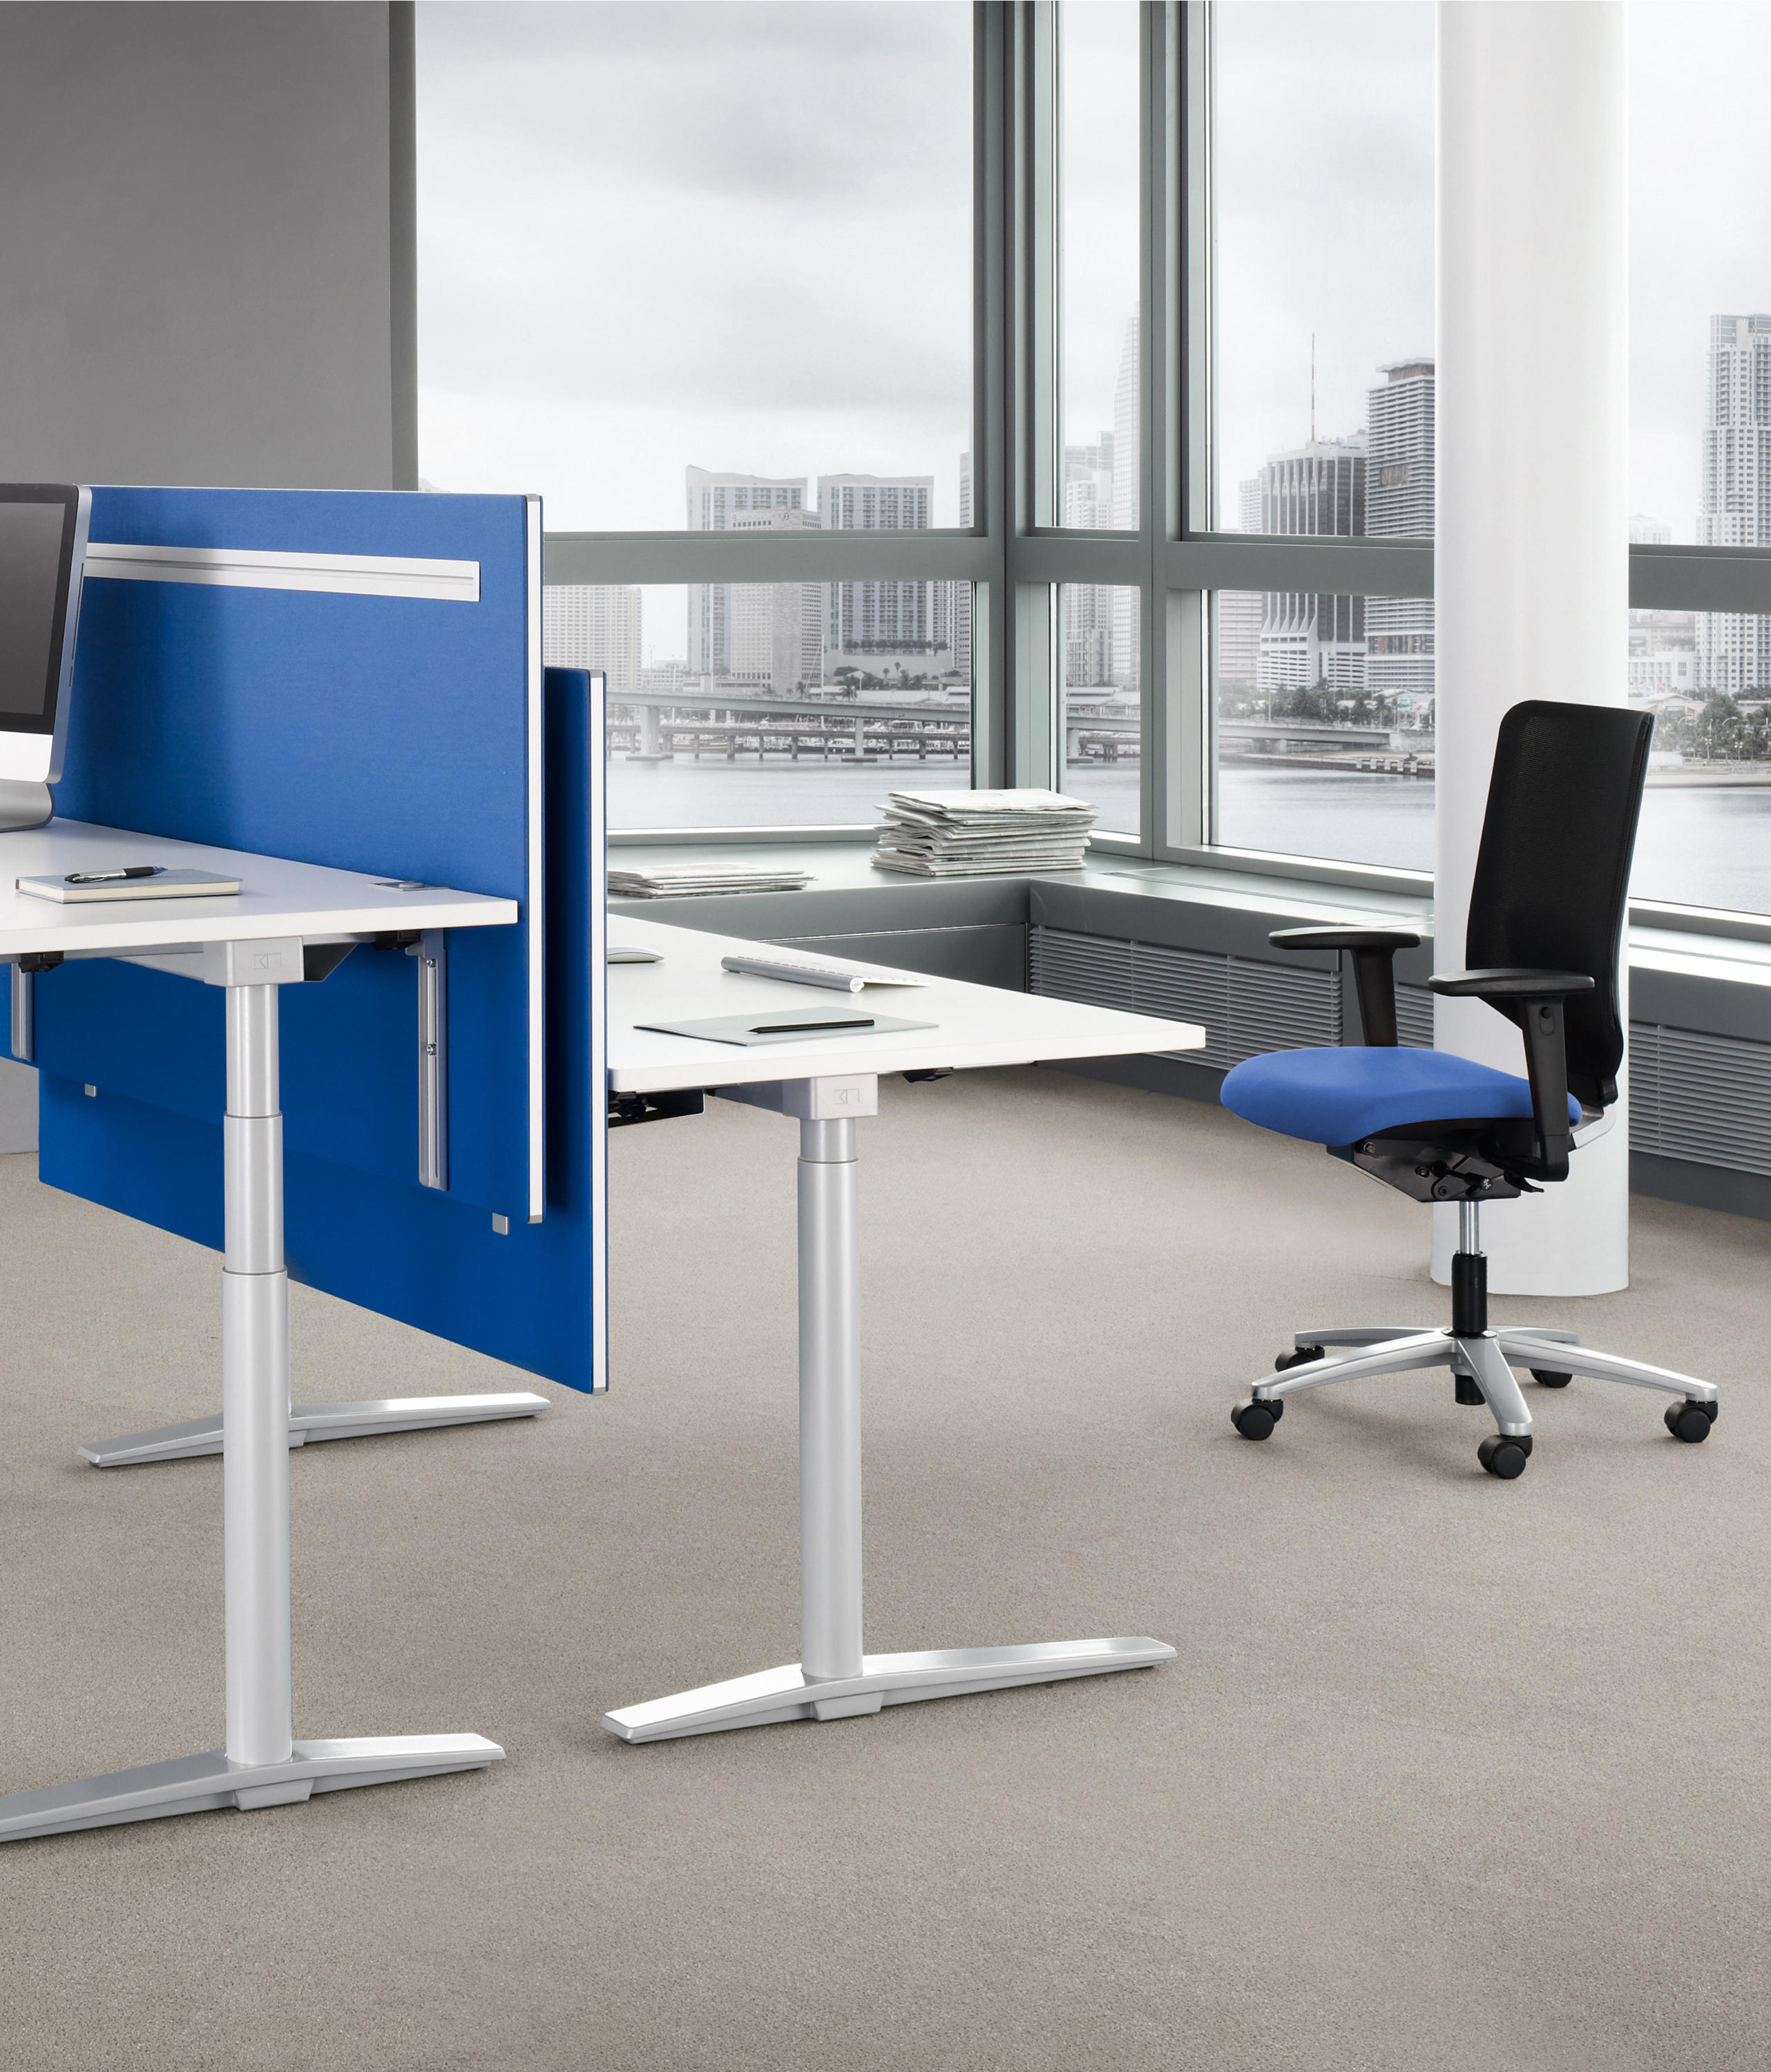 TALO.S - Individual desks from König+Neurath | Architonic